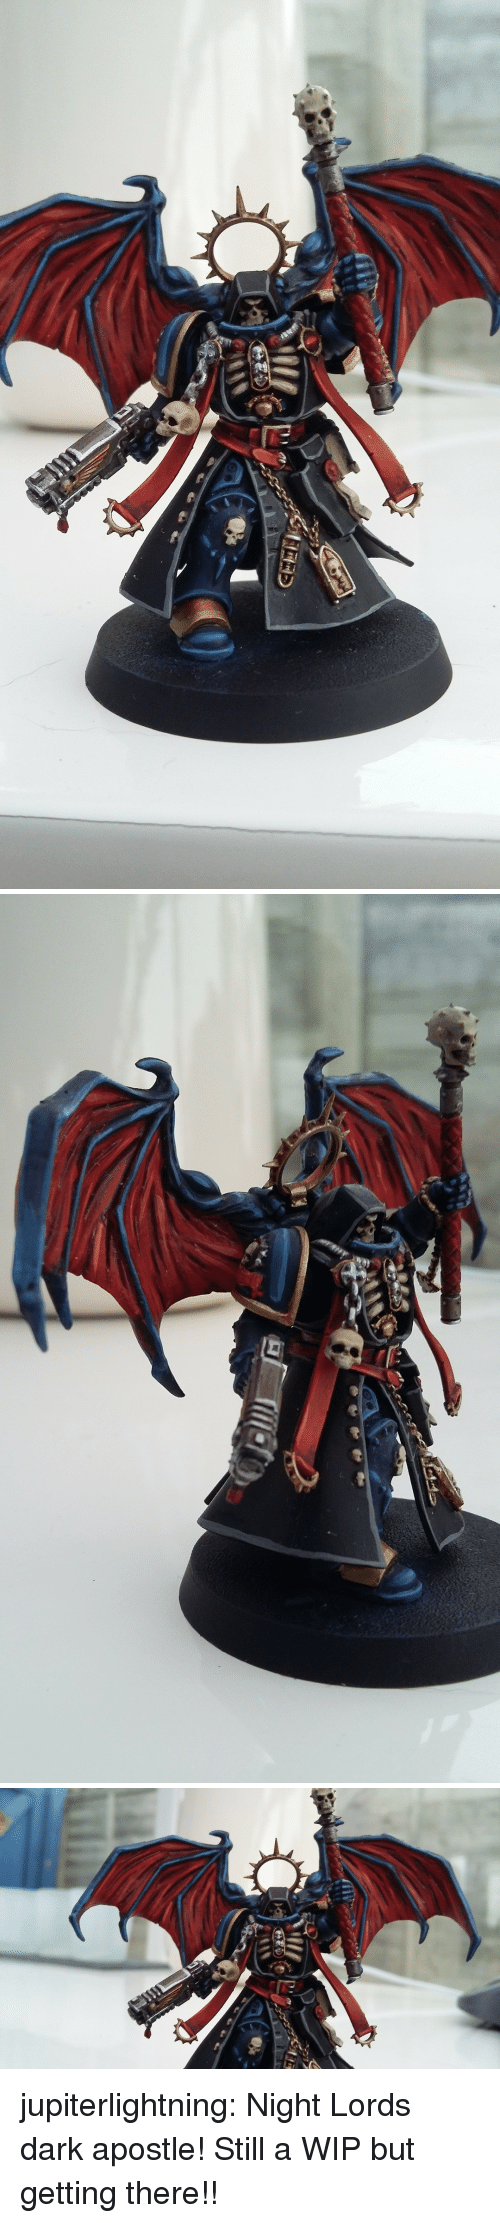 Tumblr, Blog, and Http: jupiterlightning:  Night Lords dark apostle! Still a WIP but getting there!!